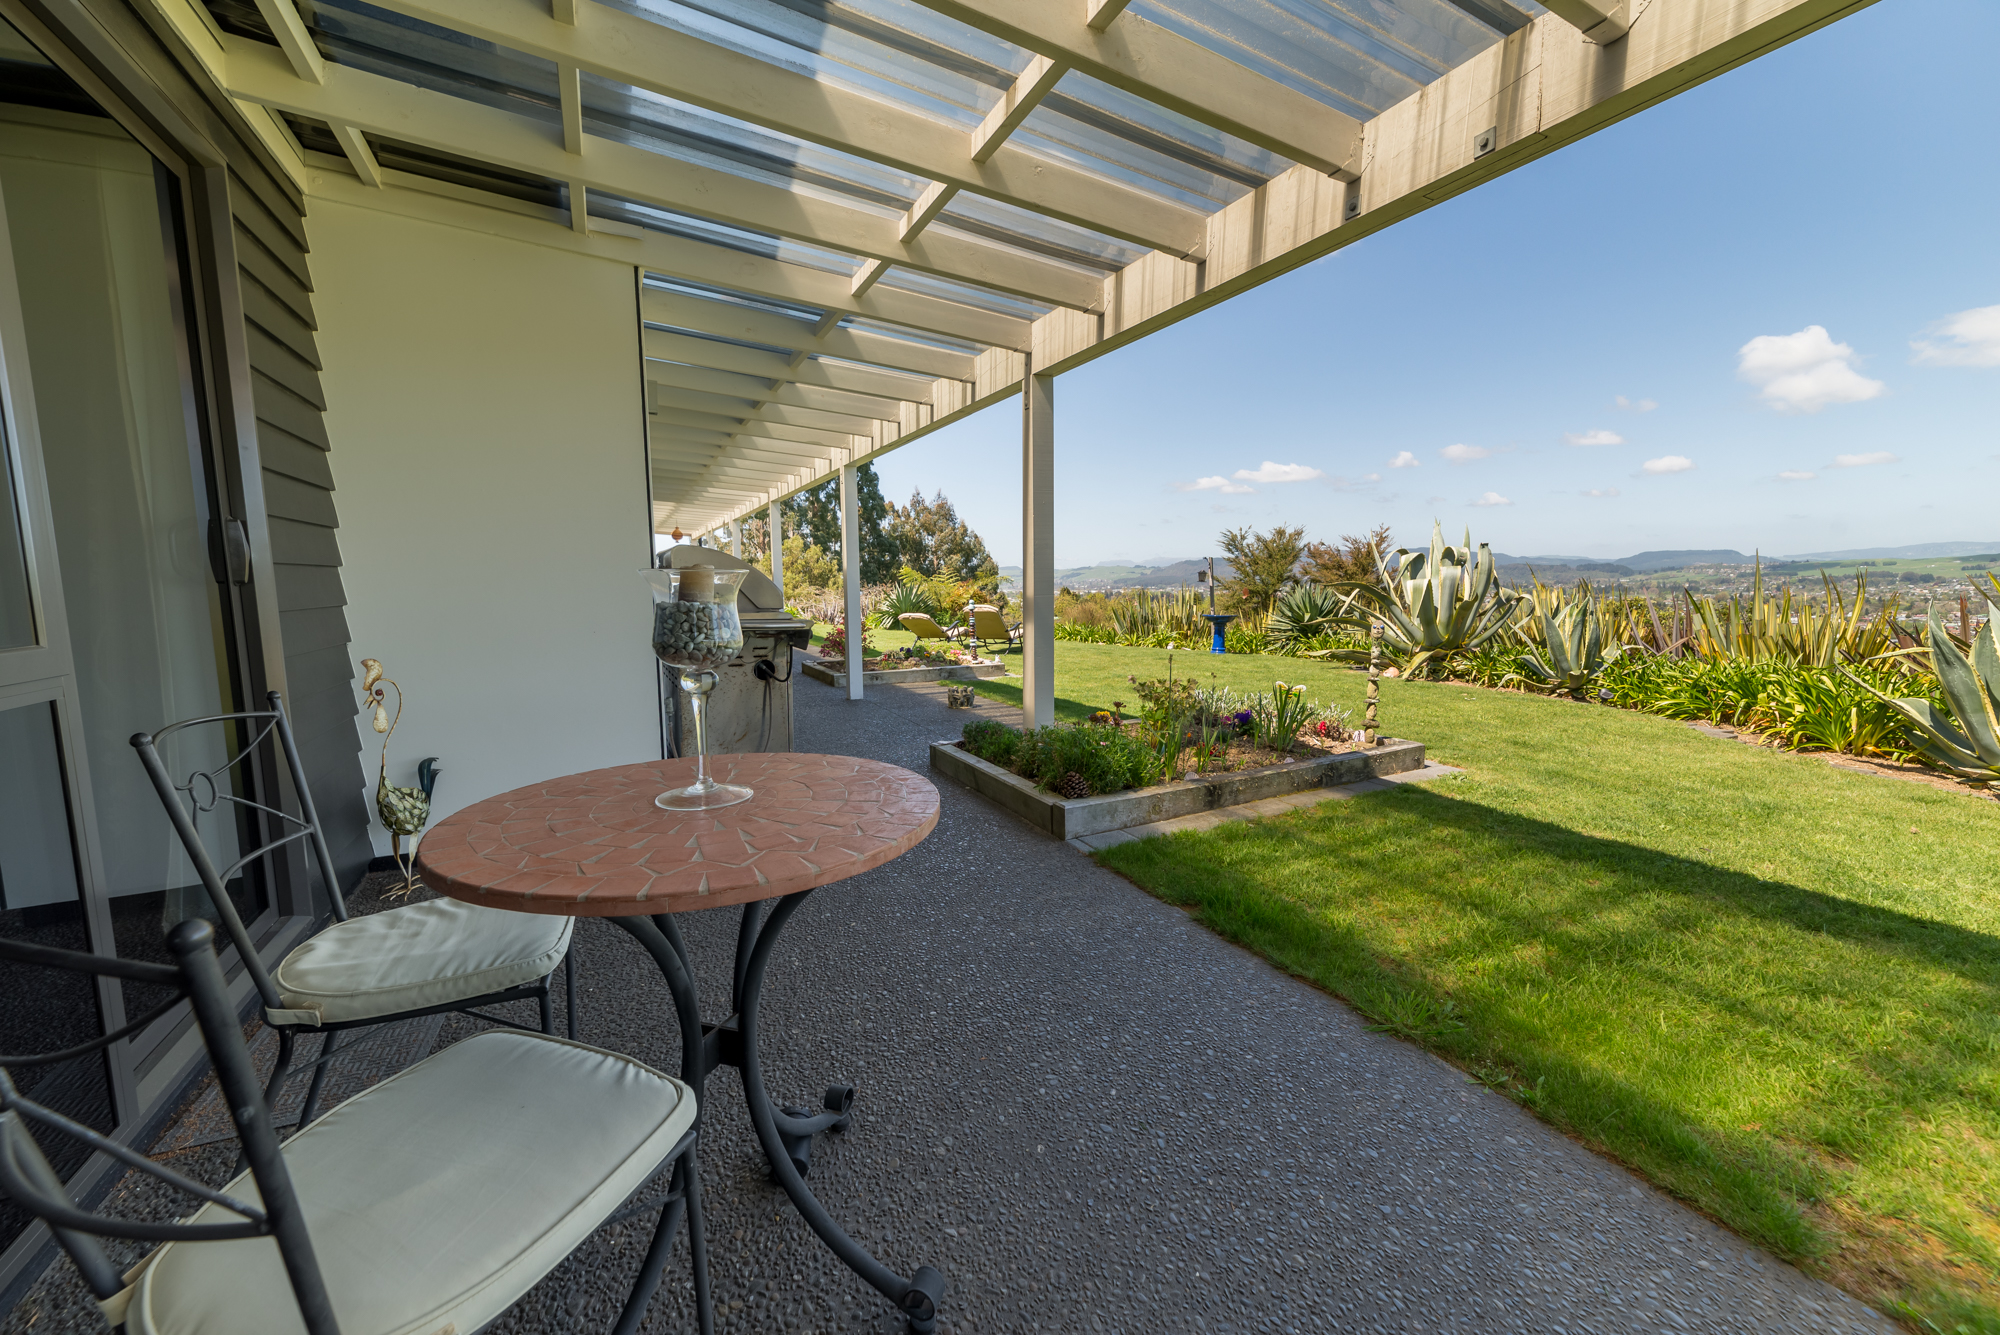 Tui suite outdoor seating area